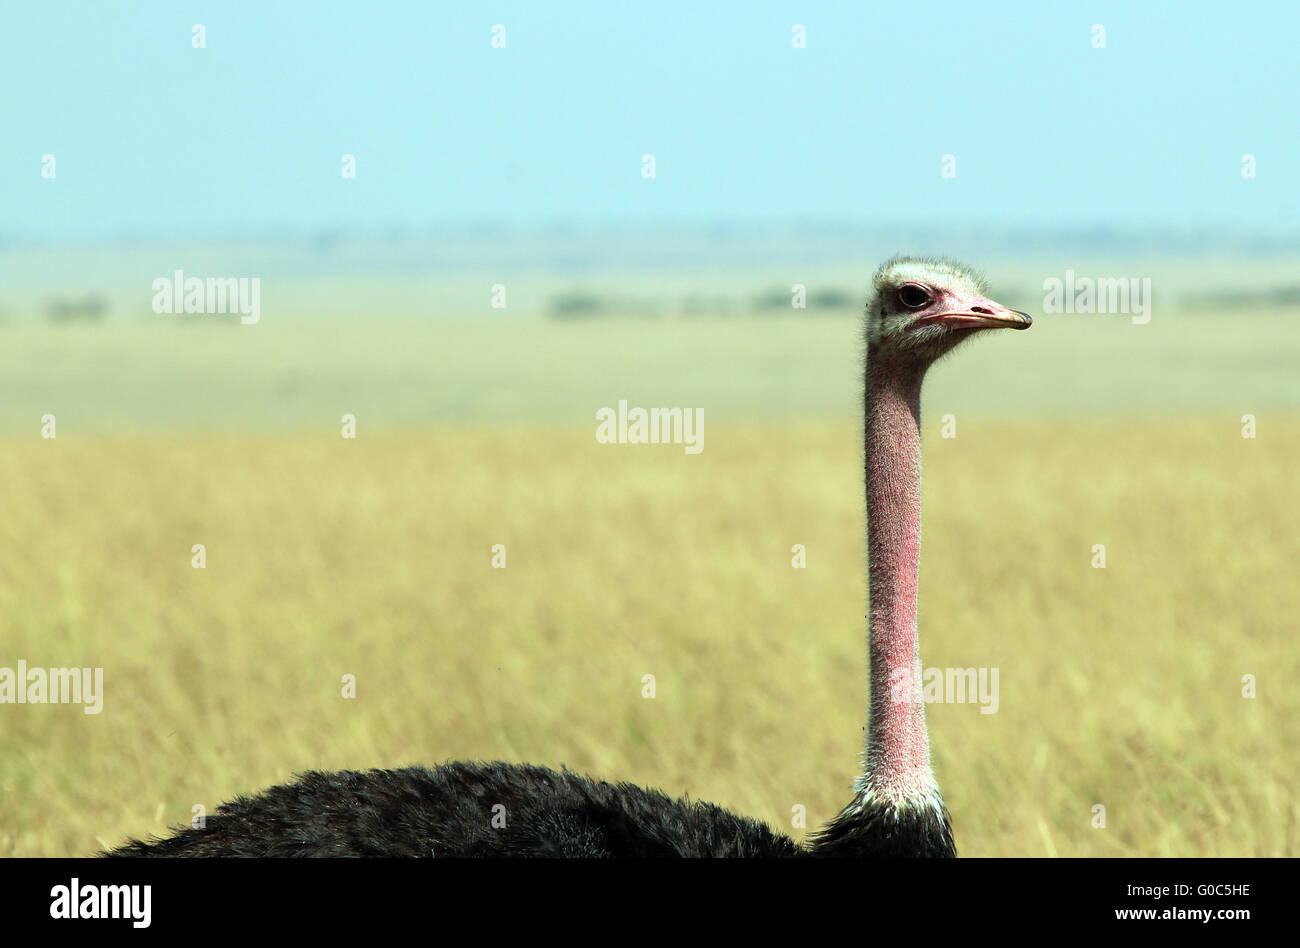 Ostrich - Stock Image